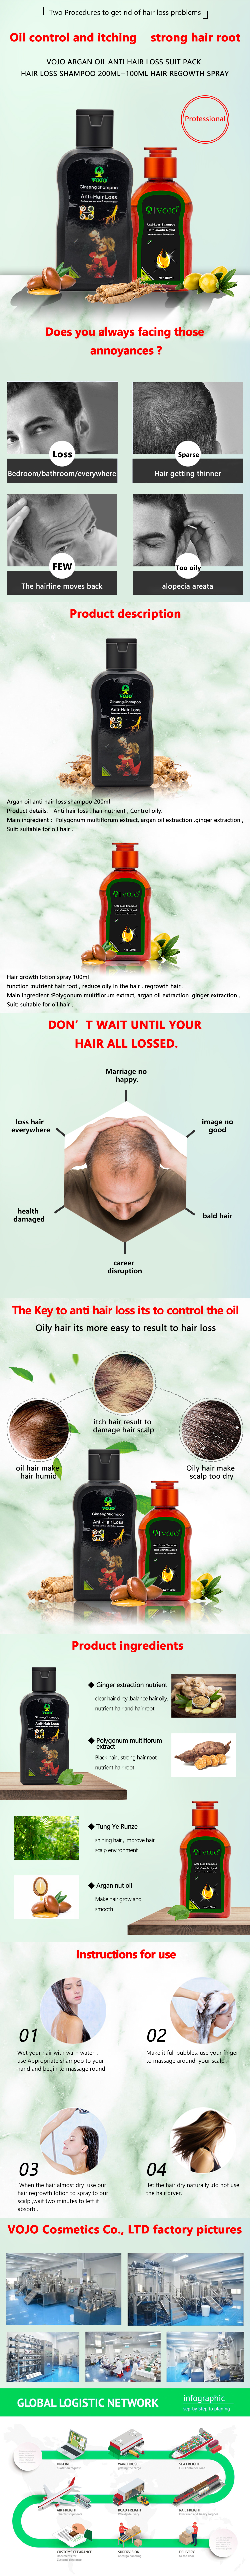 2020  hot selling China hair growth ginseng essence oil anti hair loss promotes and hair growth liquid suit pack from UK BRAND.